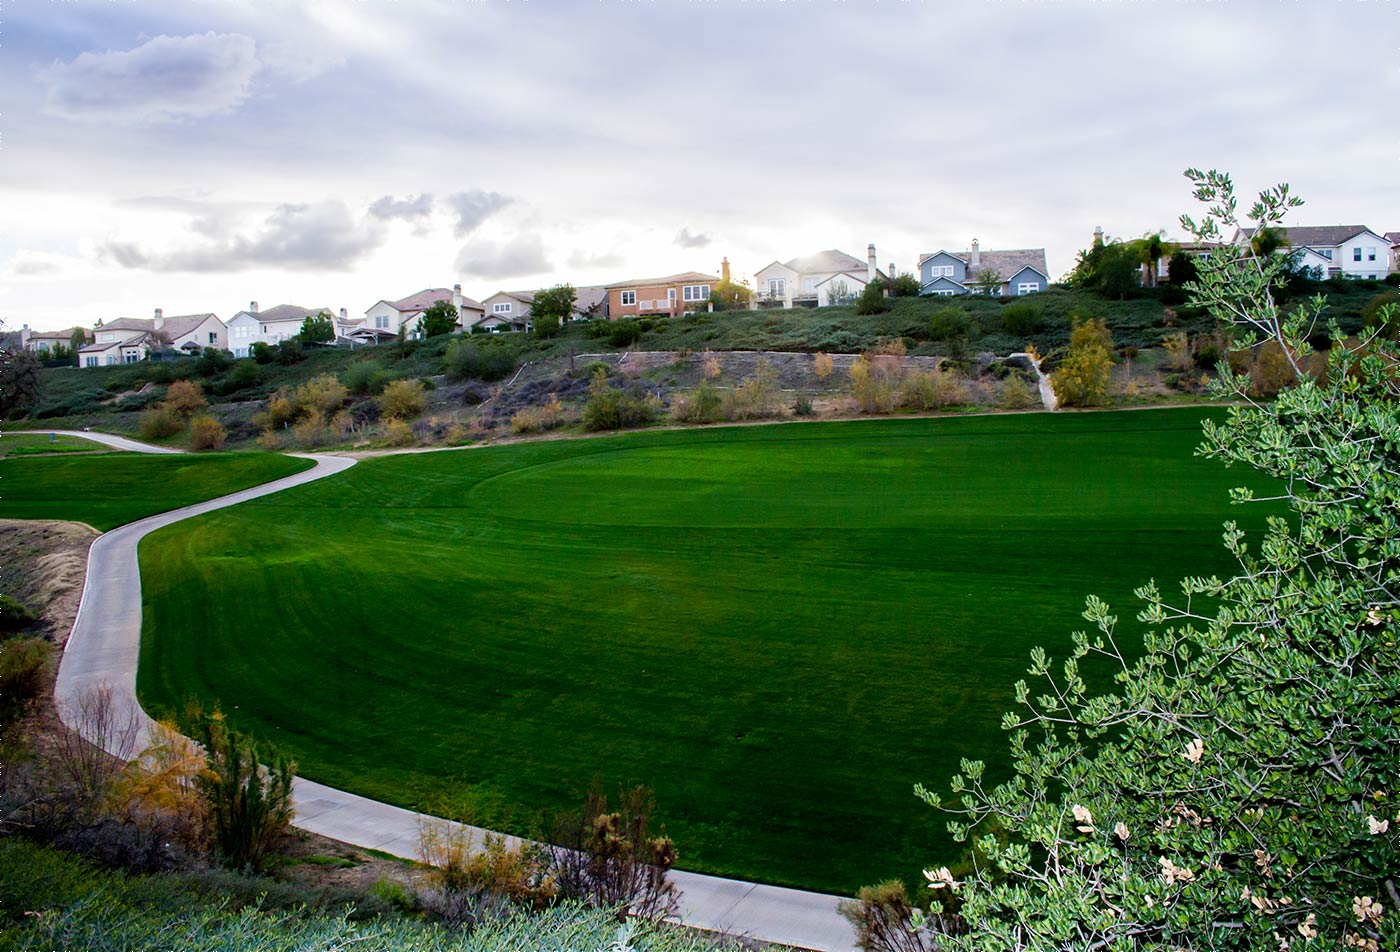 Luxury apartments in Valencia CA - Nearby golf course